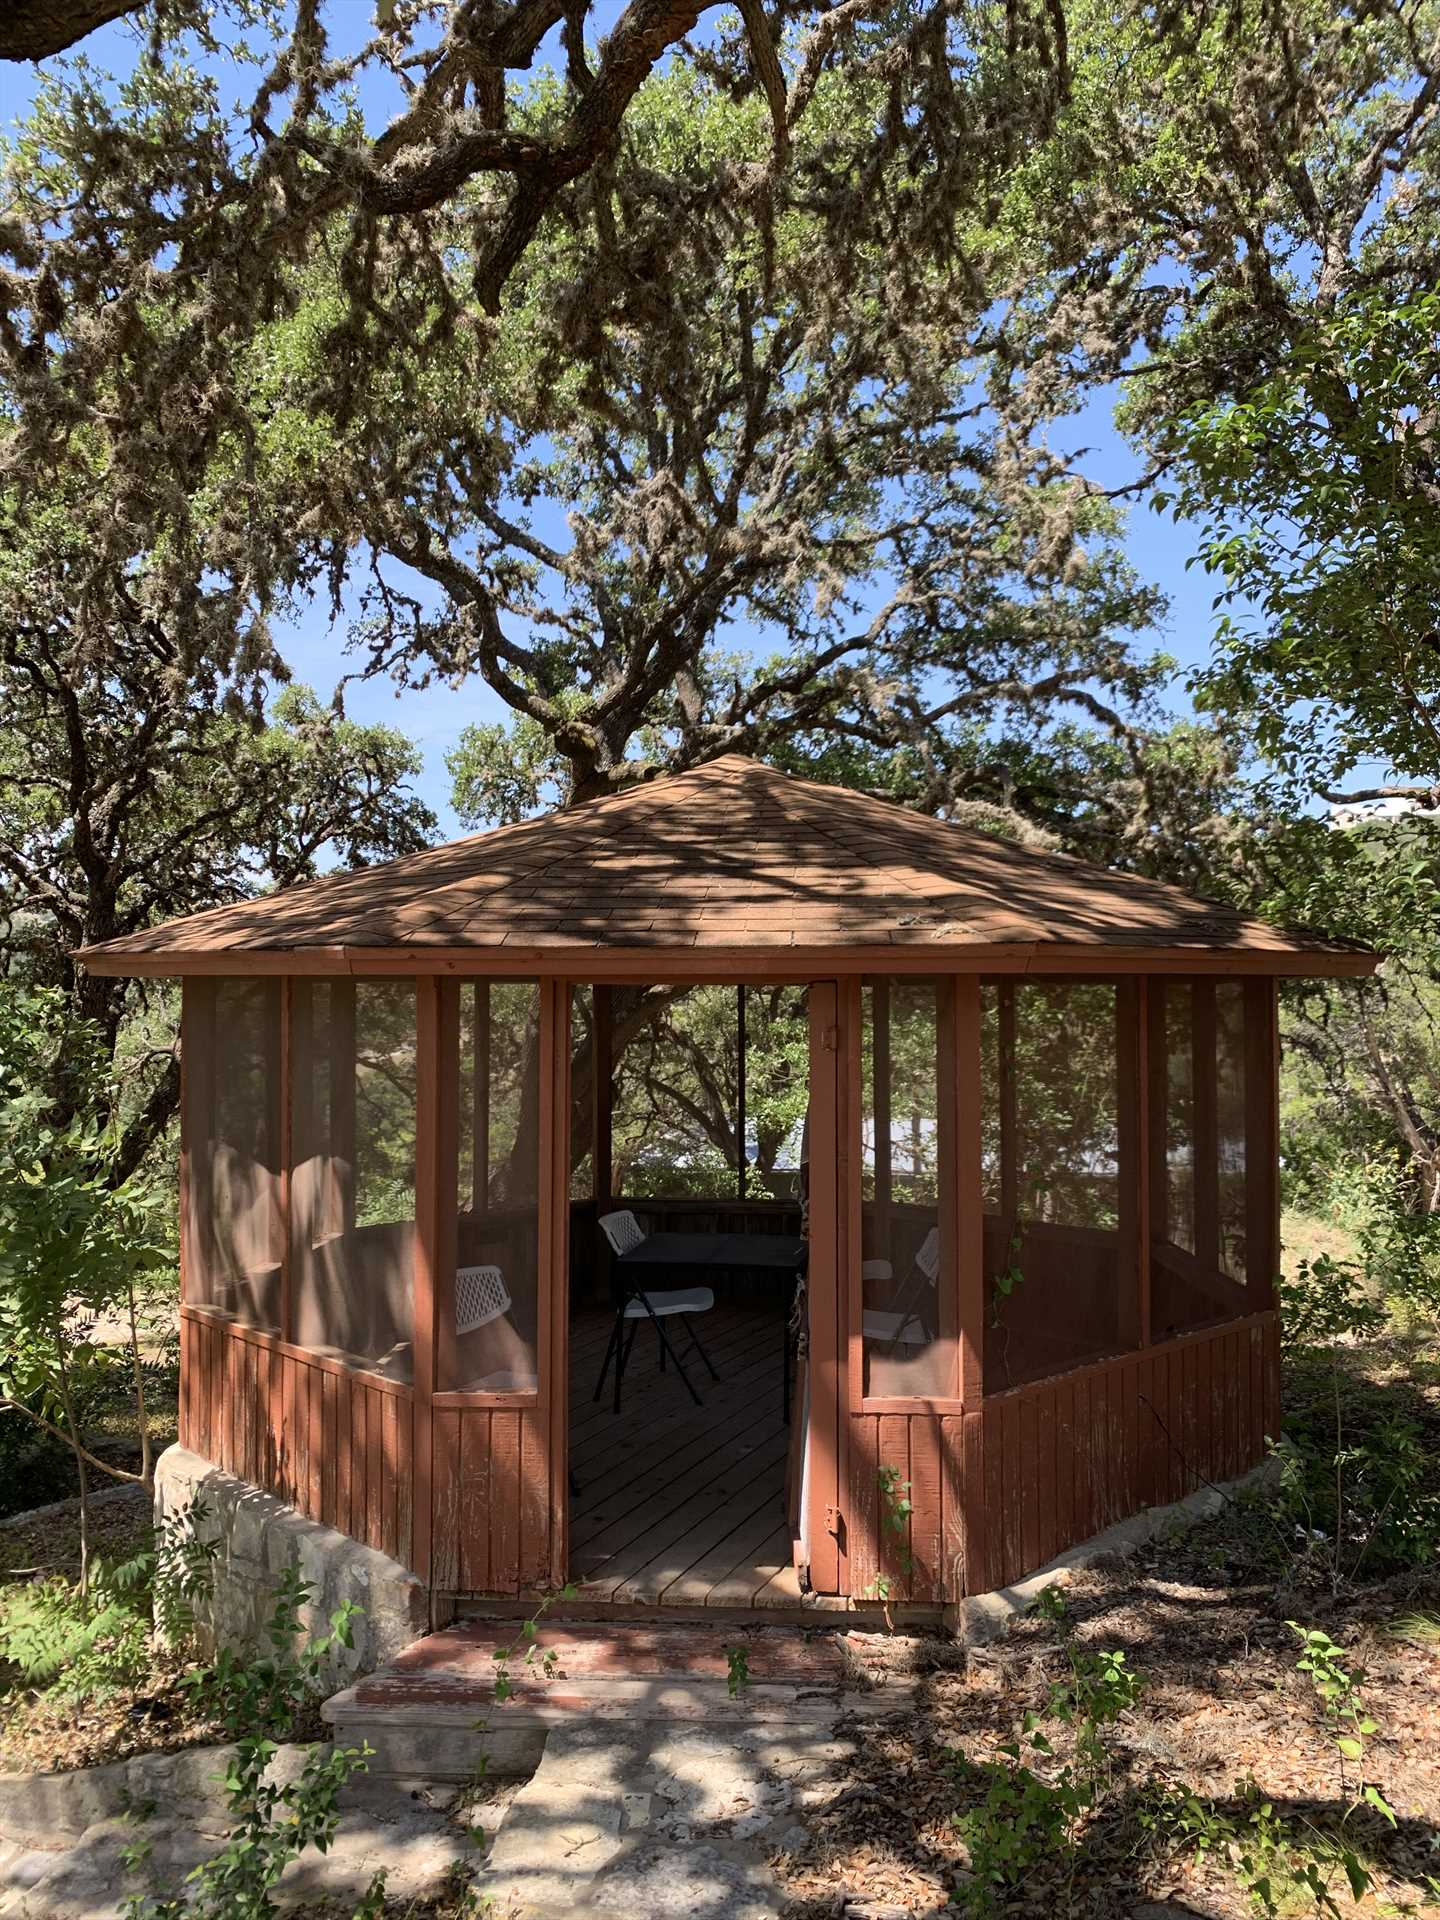 The quaint gazebo on the ranch is situated perfectly in a cool and shady spot!